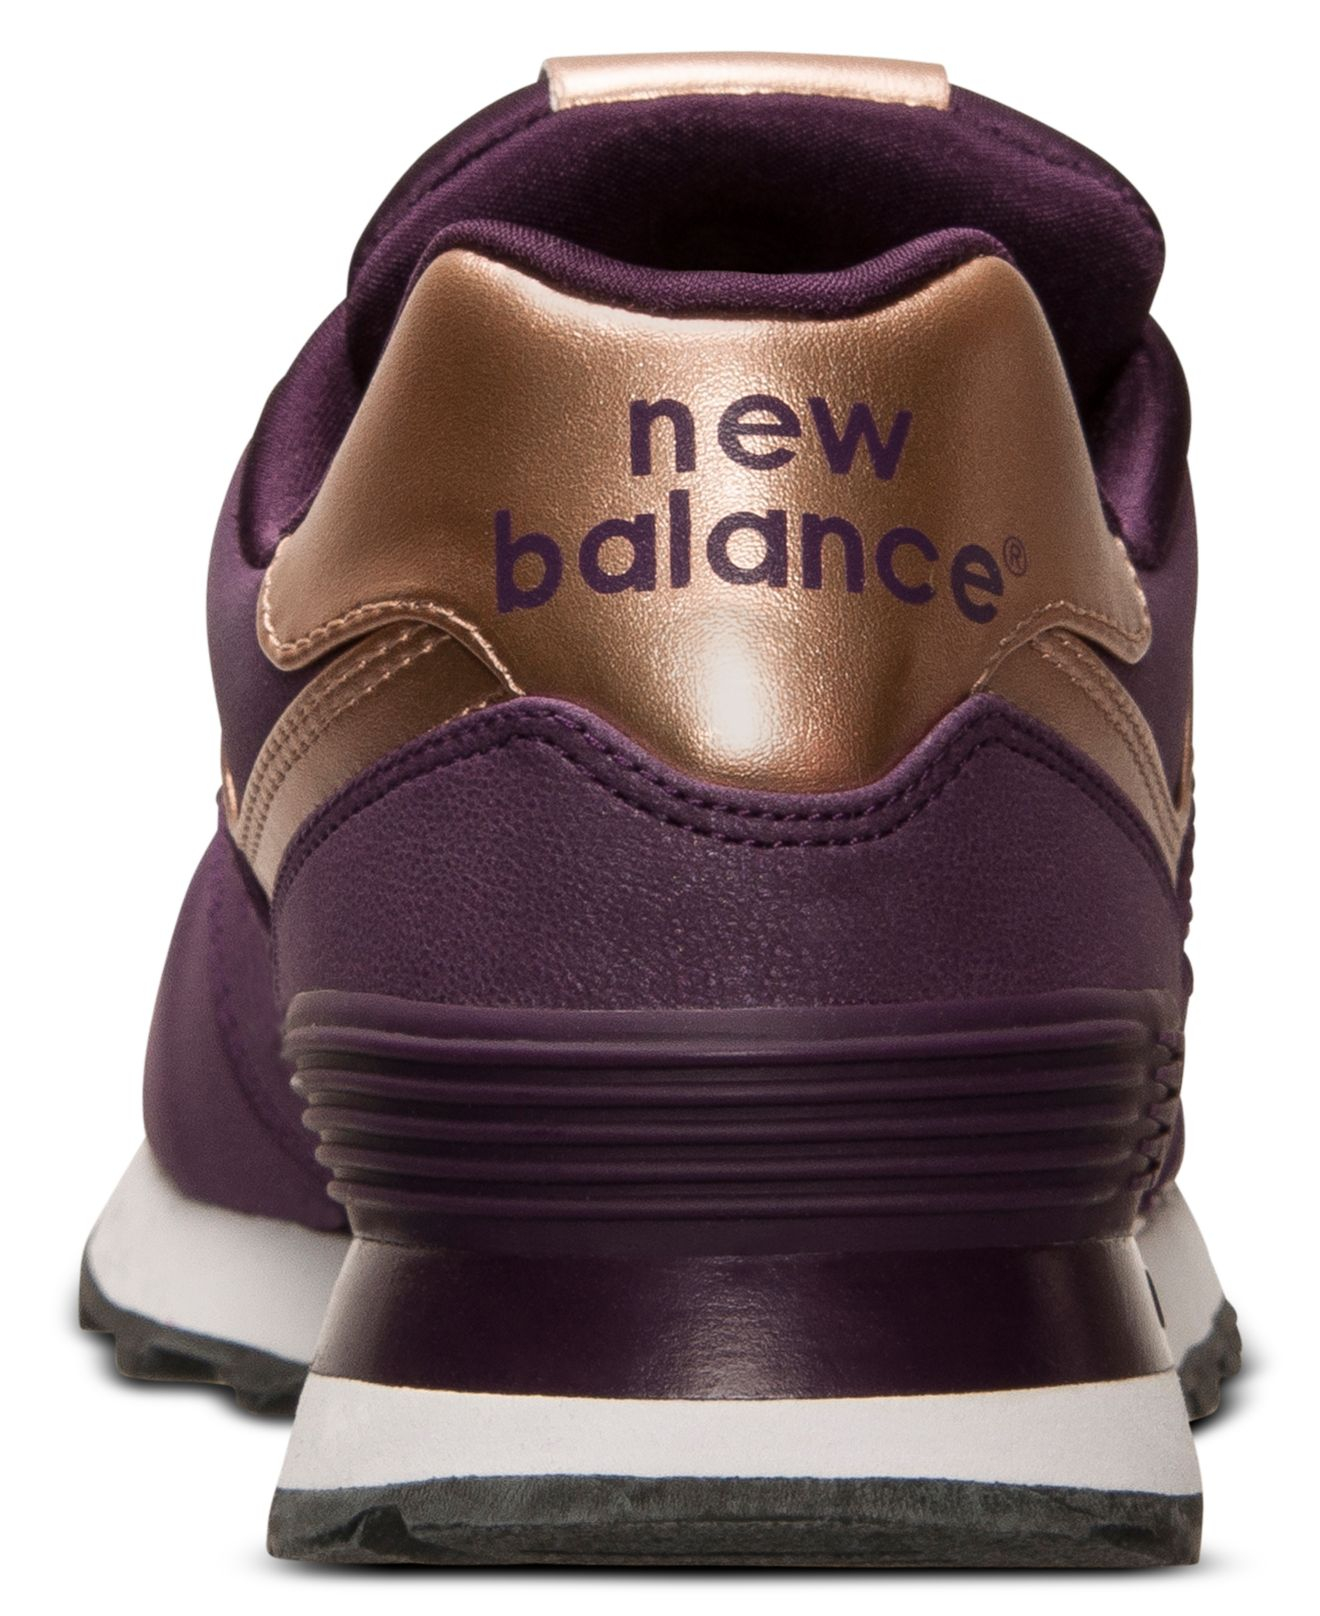 new balance purple rose